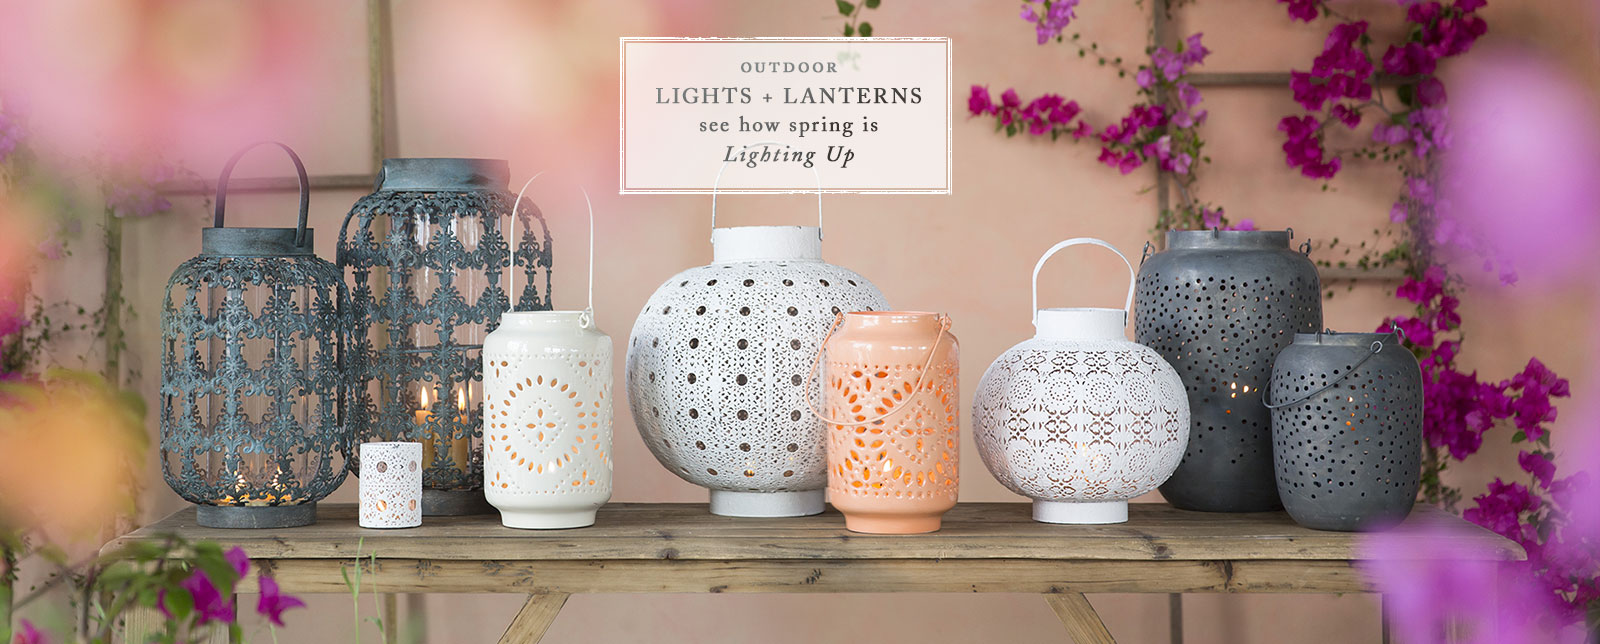 Outdoor Lights + Lanterns | See How Spring is Lighting Up